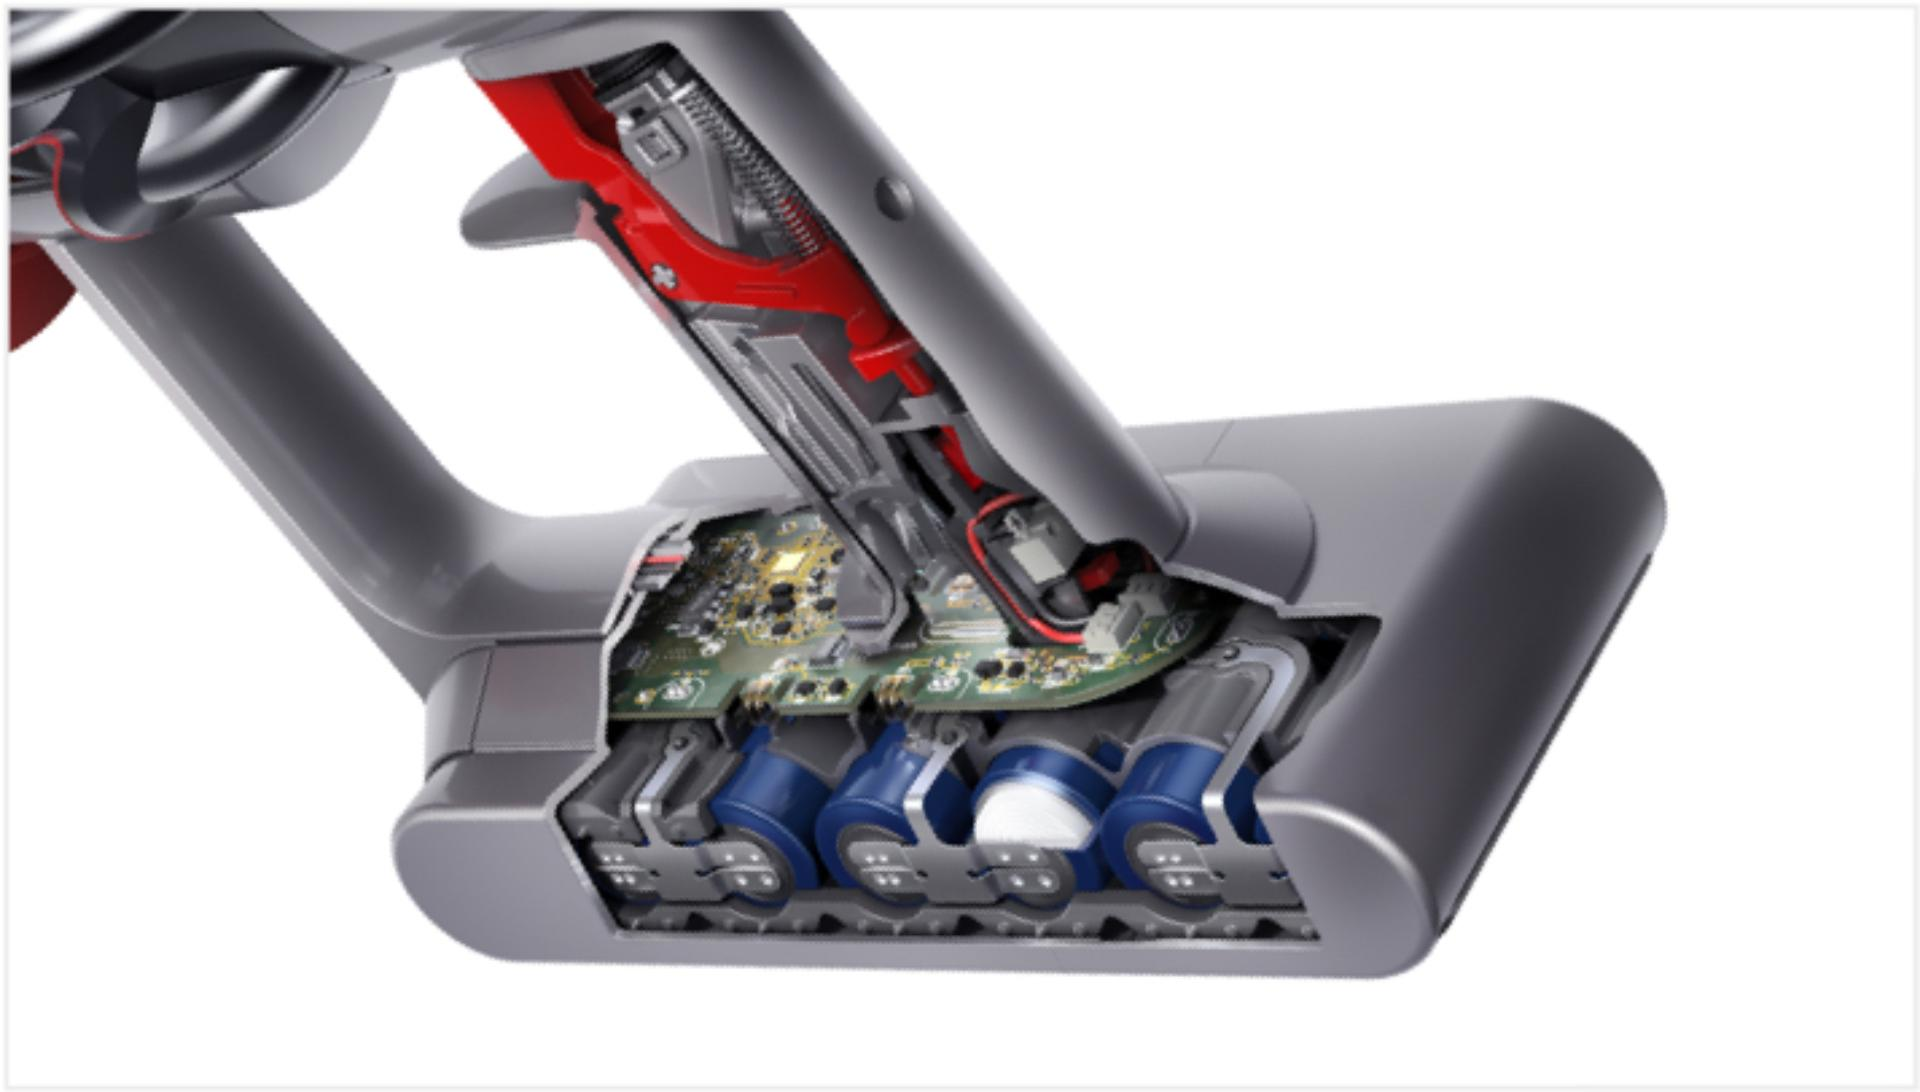 Cutaway of Dyson V11 Outsize vacuum battery pack